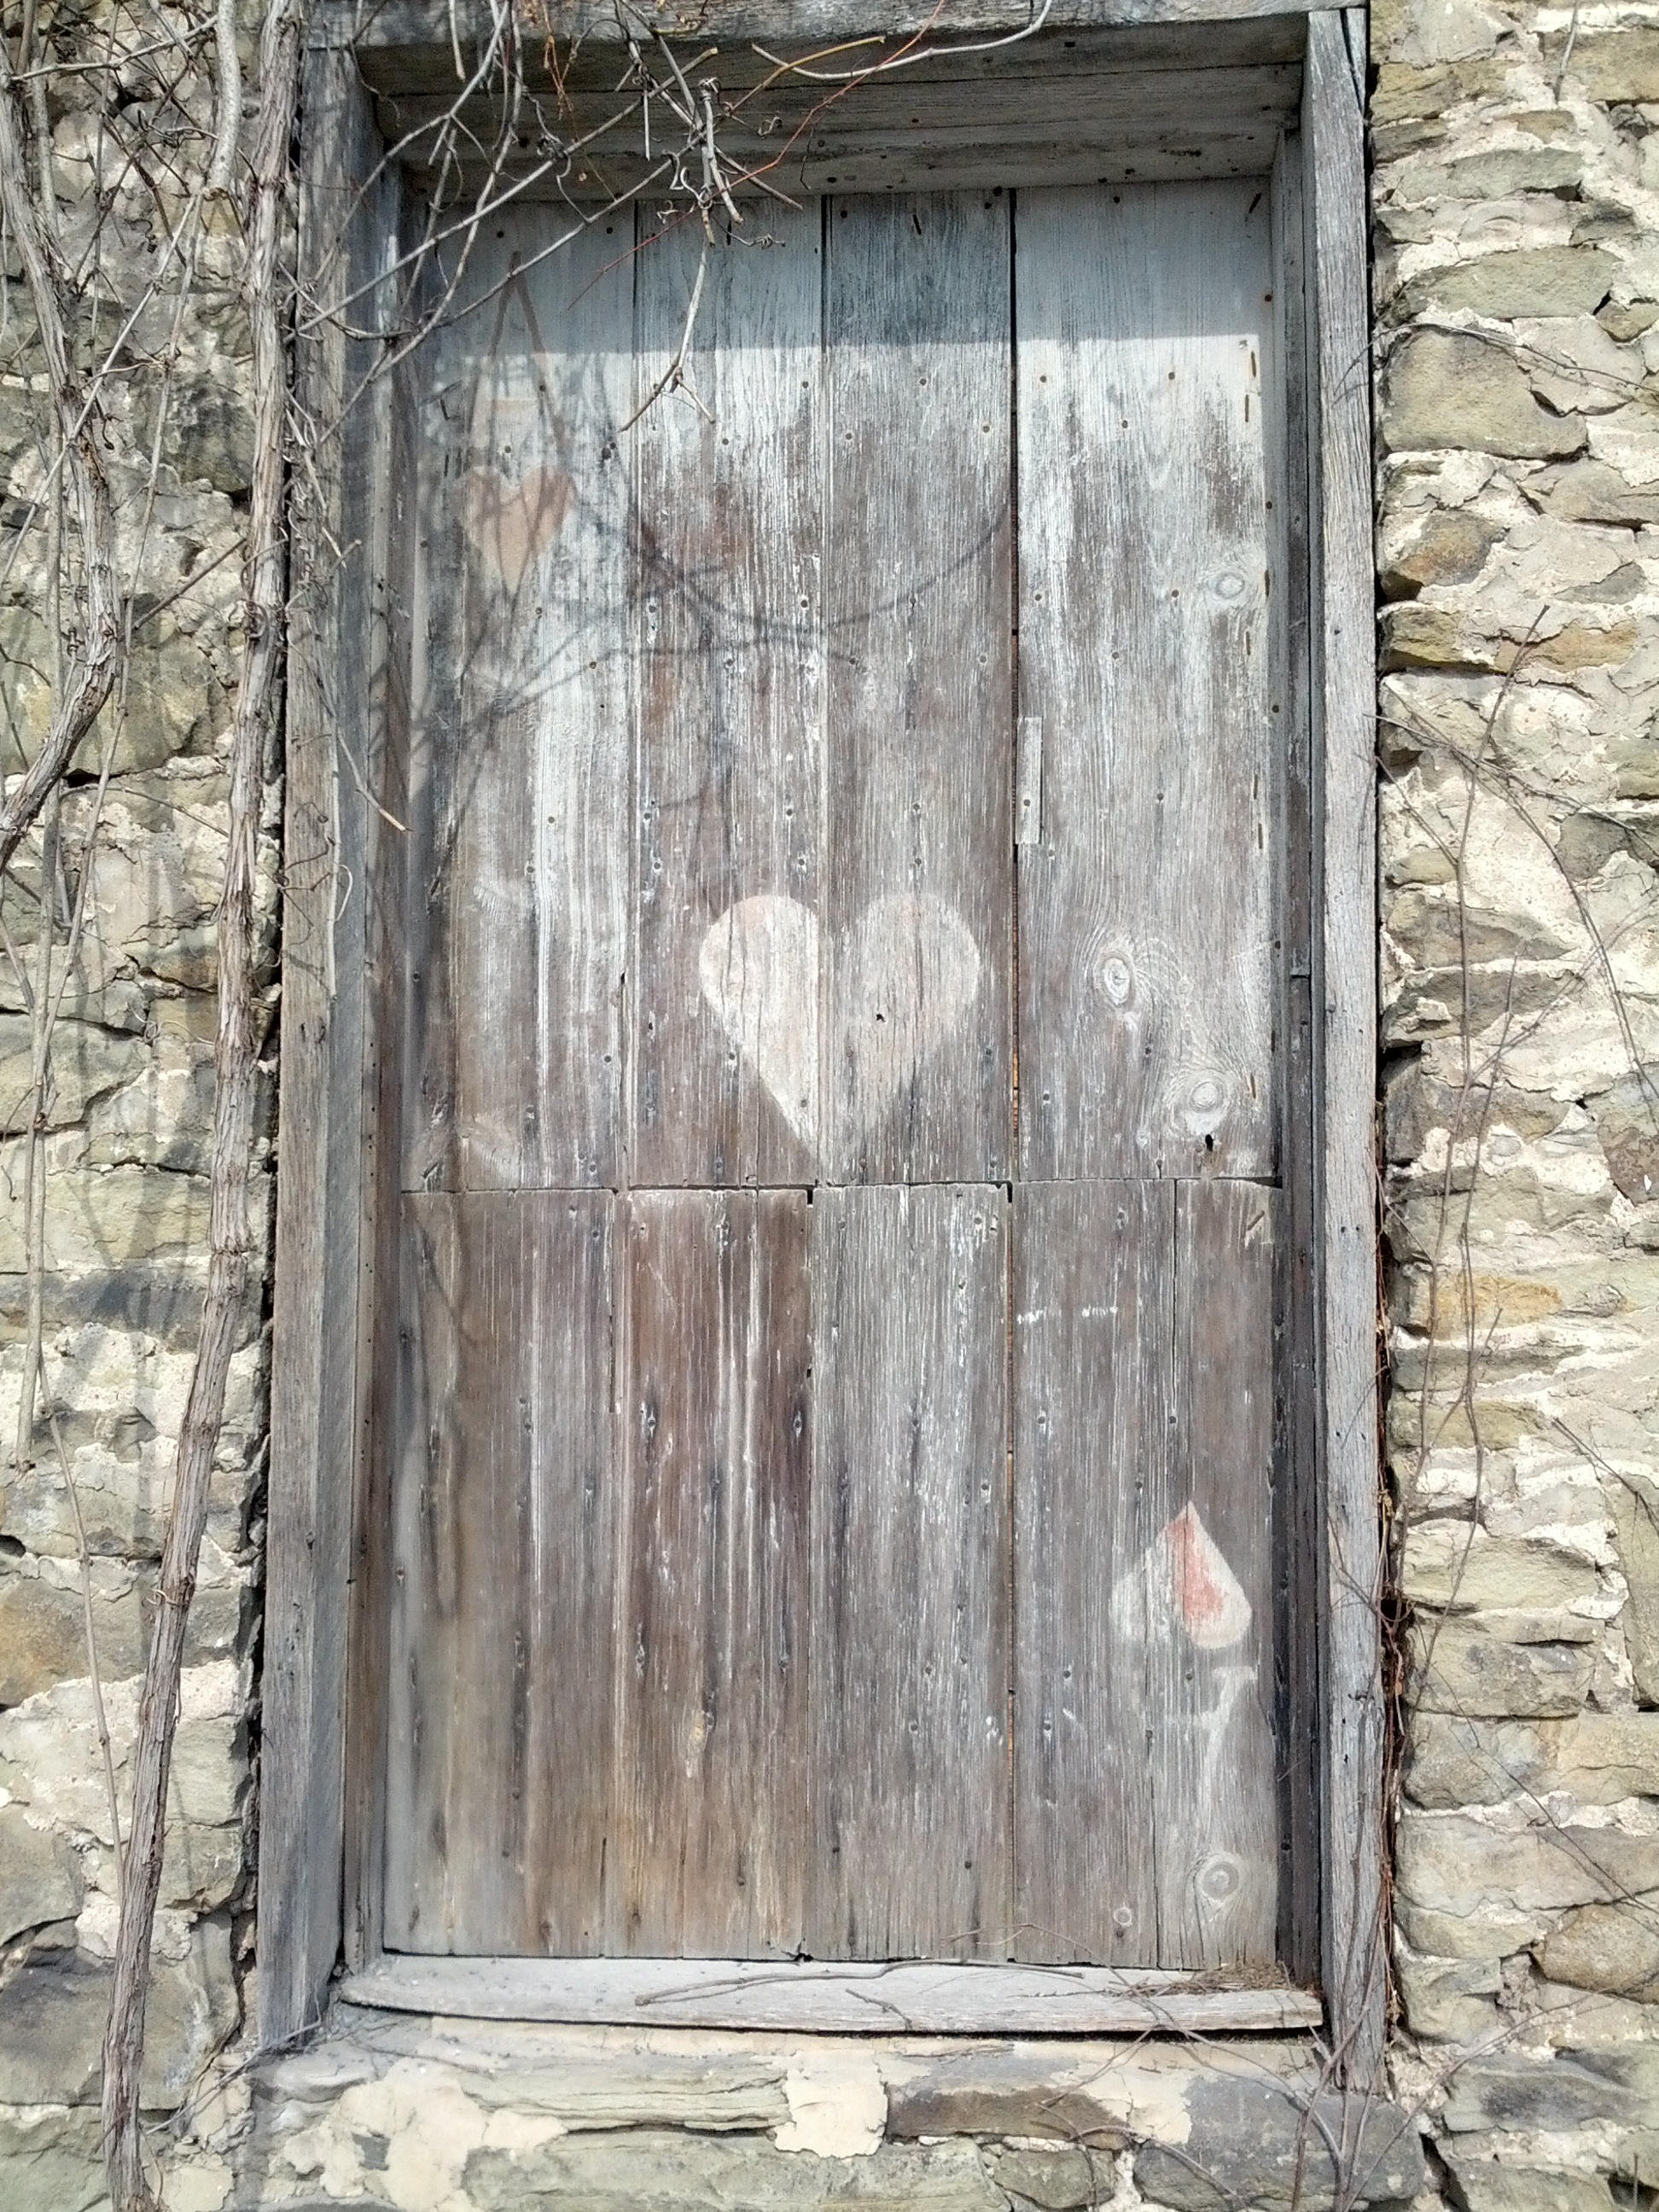 A door painted like the ace of hearts